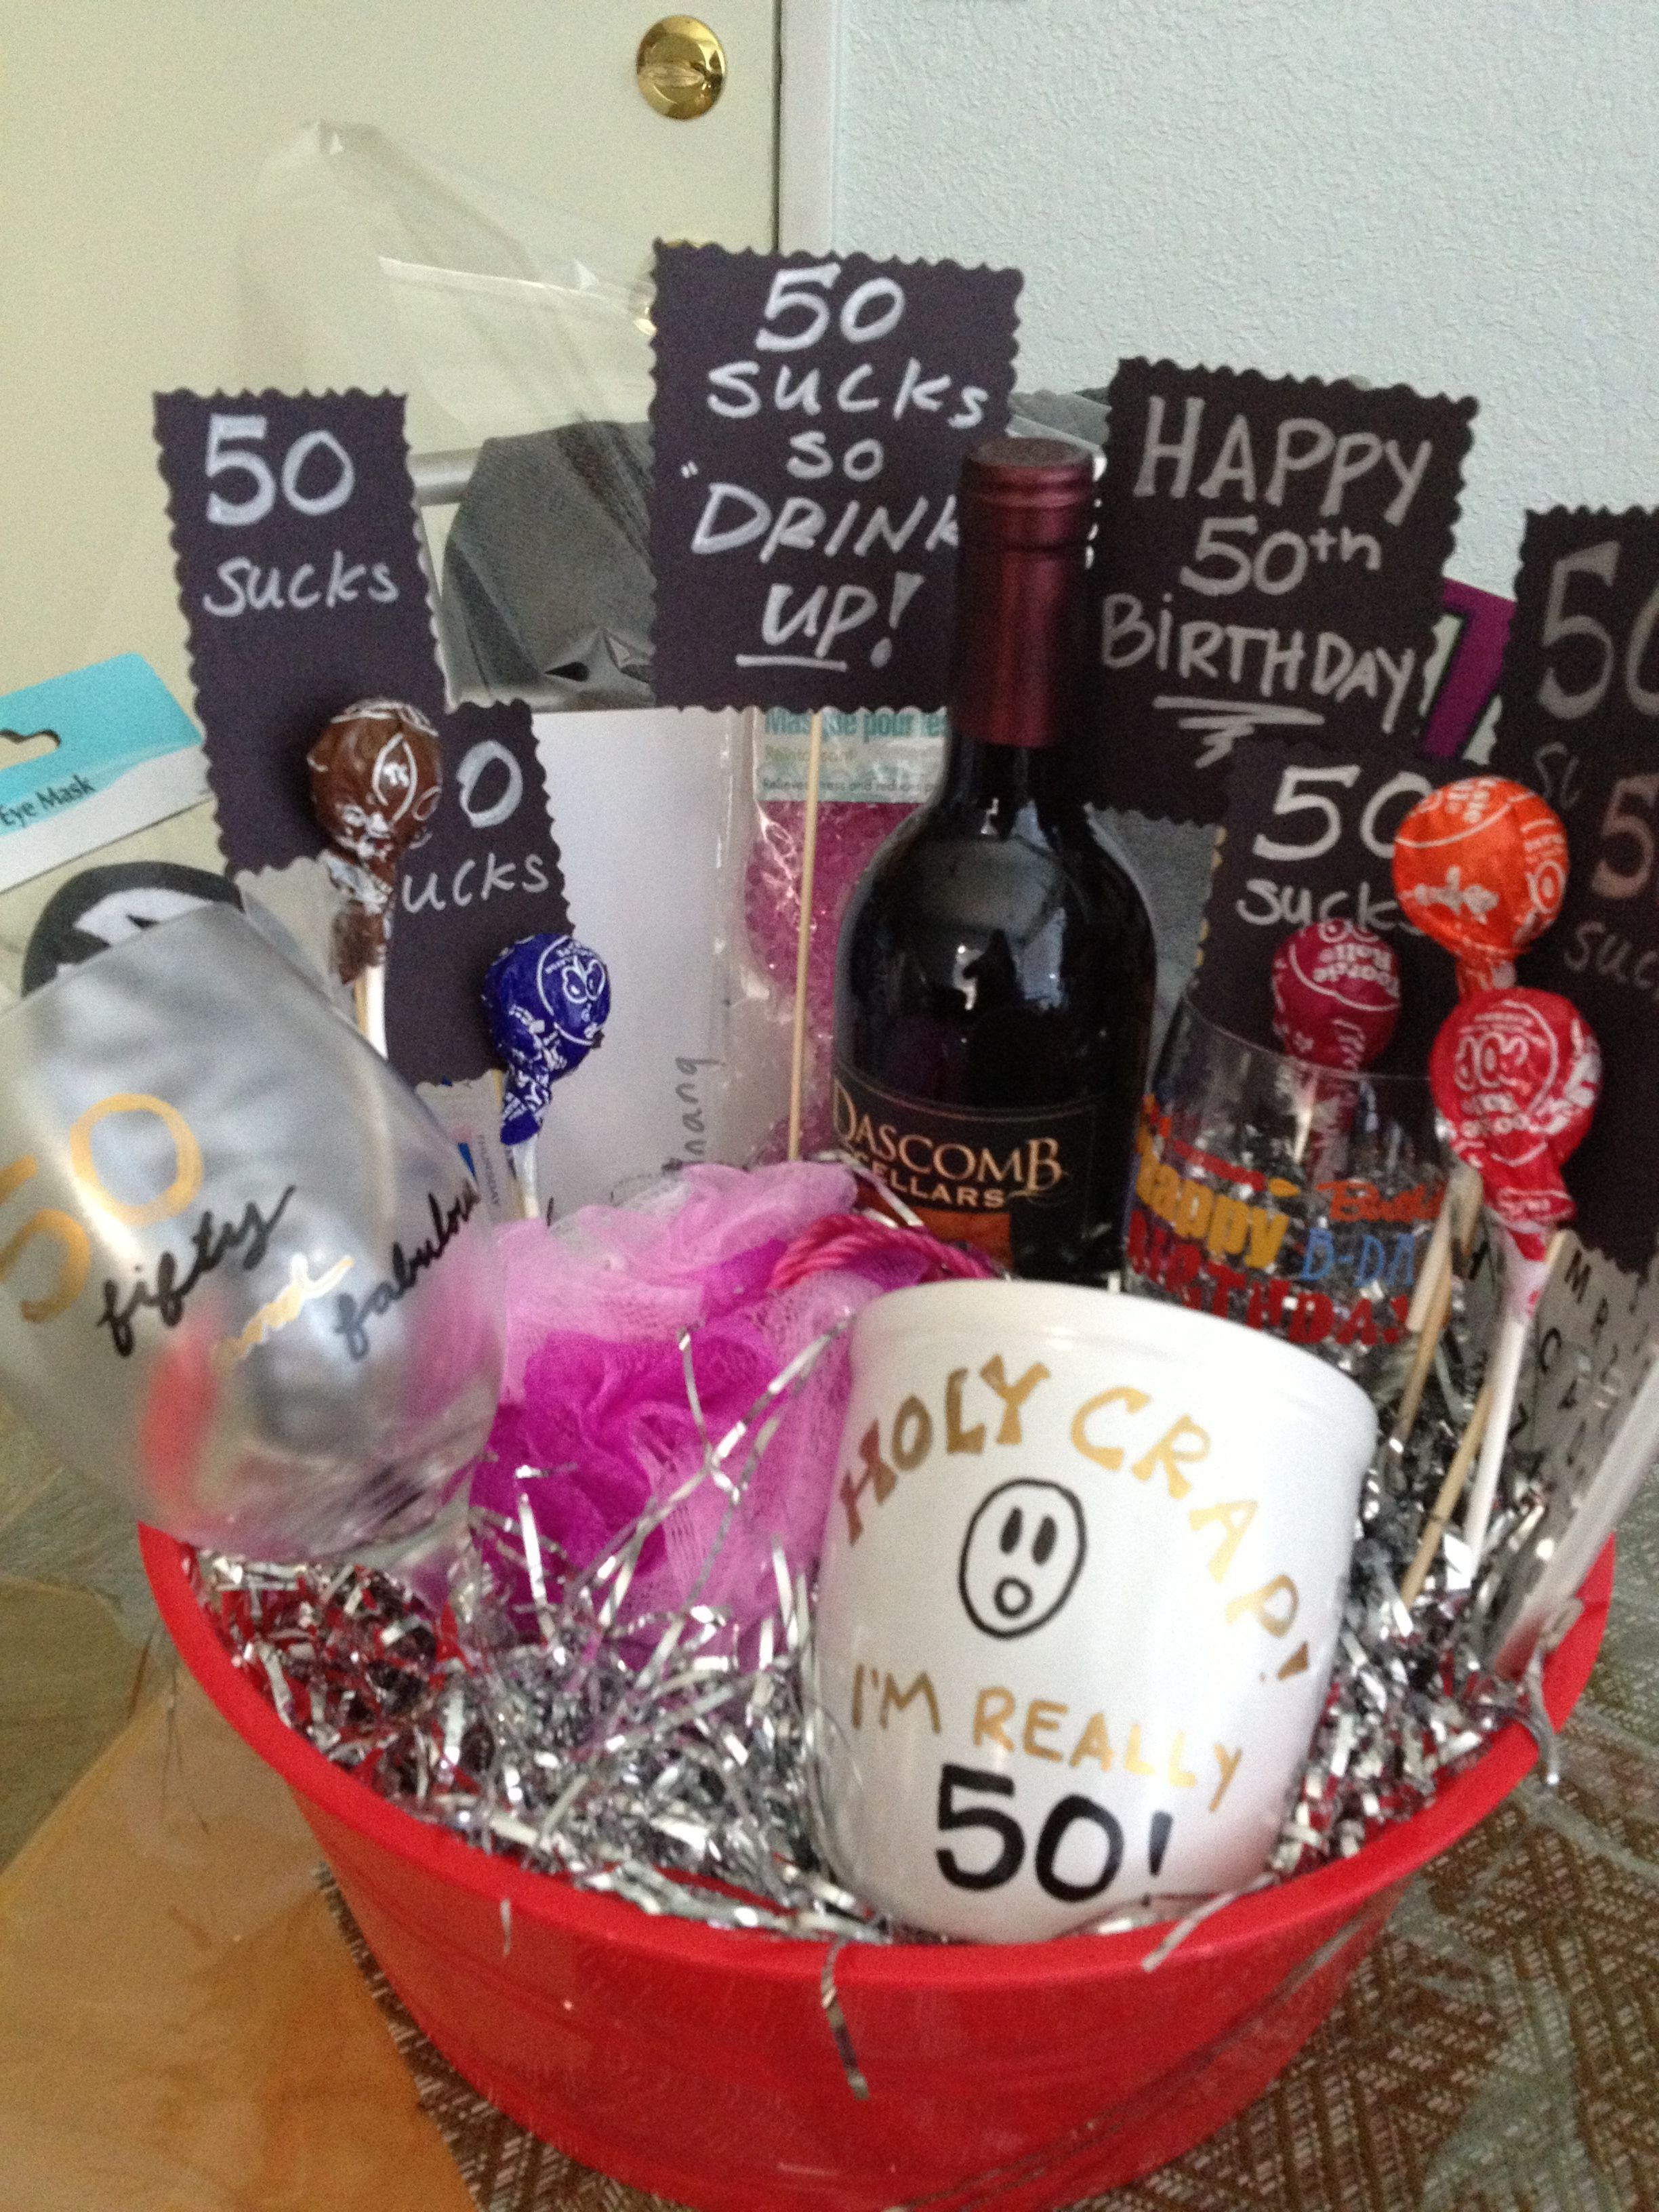 50th Birthday Gift Basket With Personalized Wine Glass And Mug Items From Dollar Tree Except For The